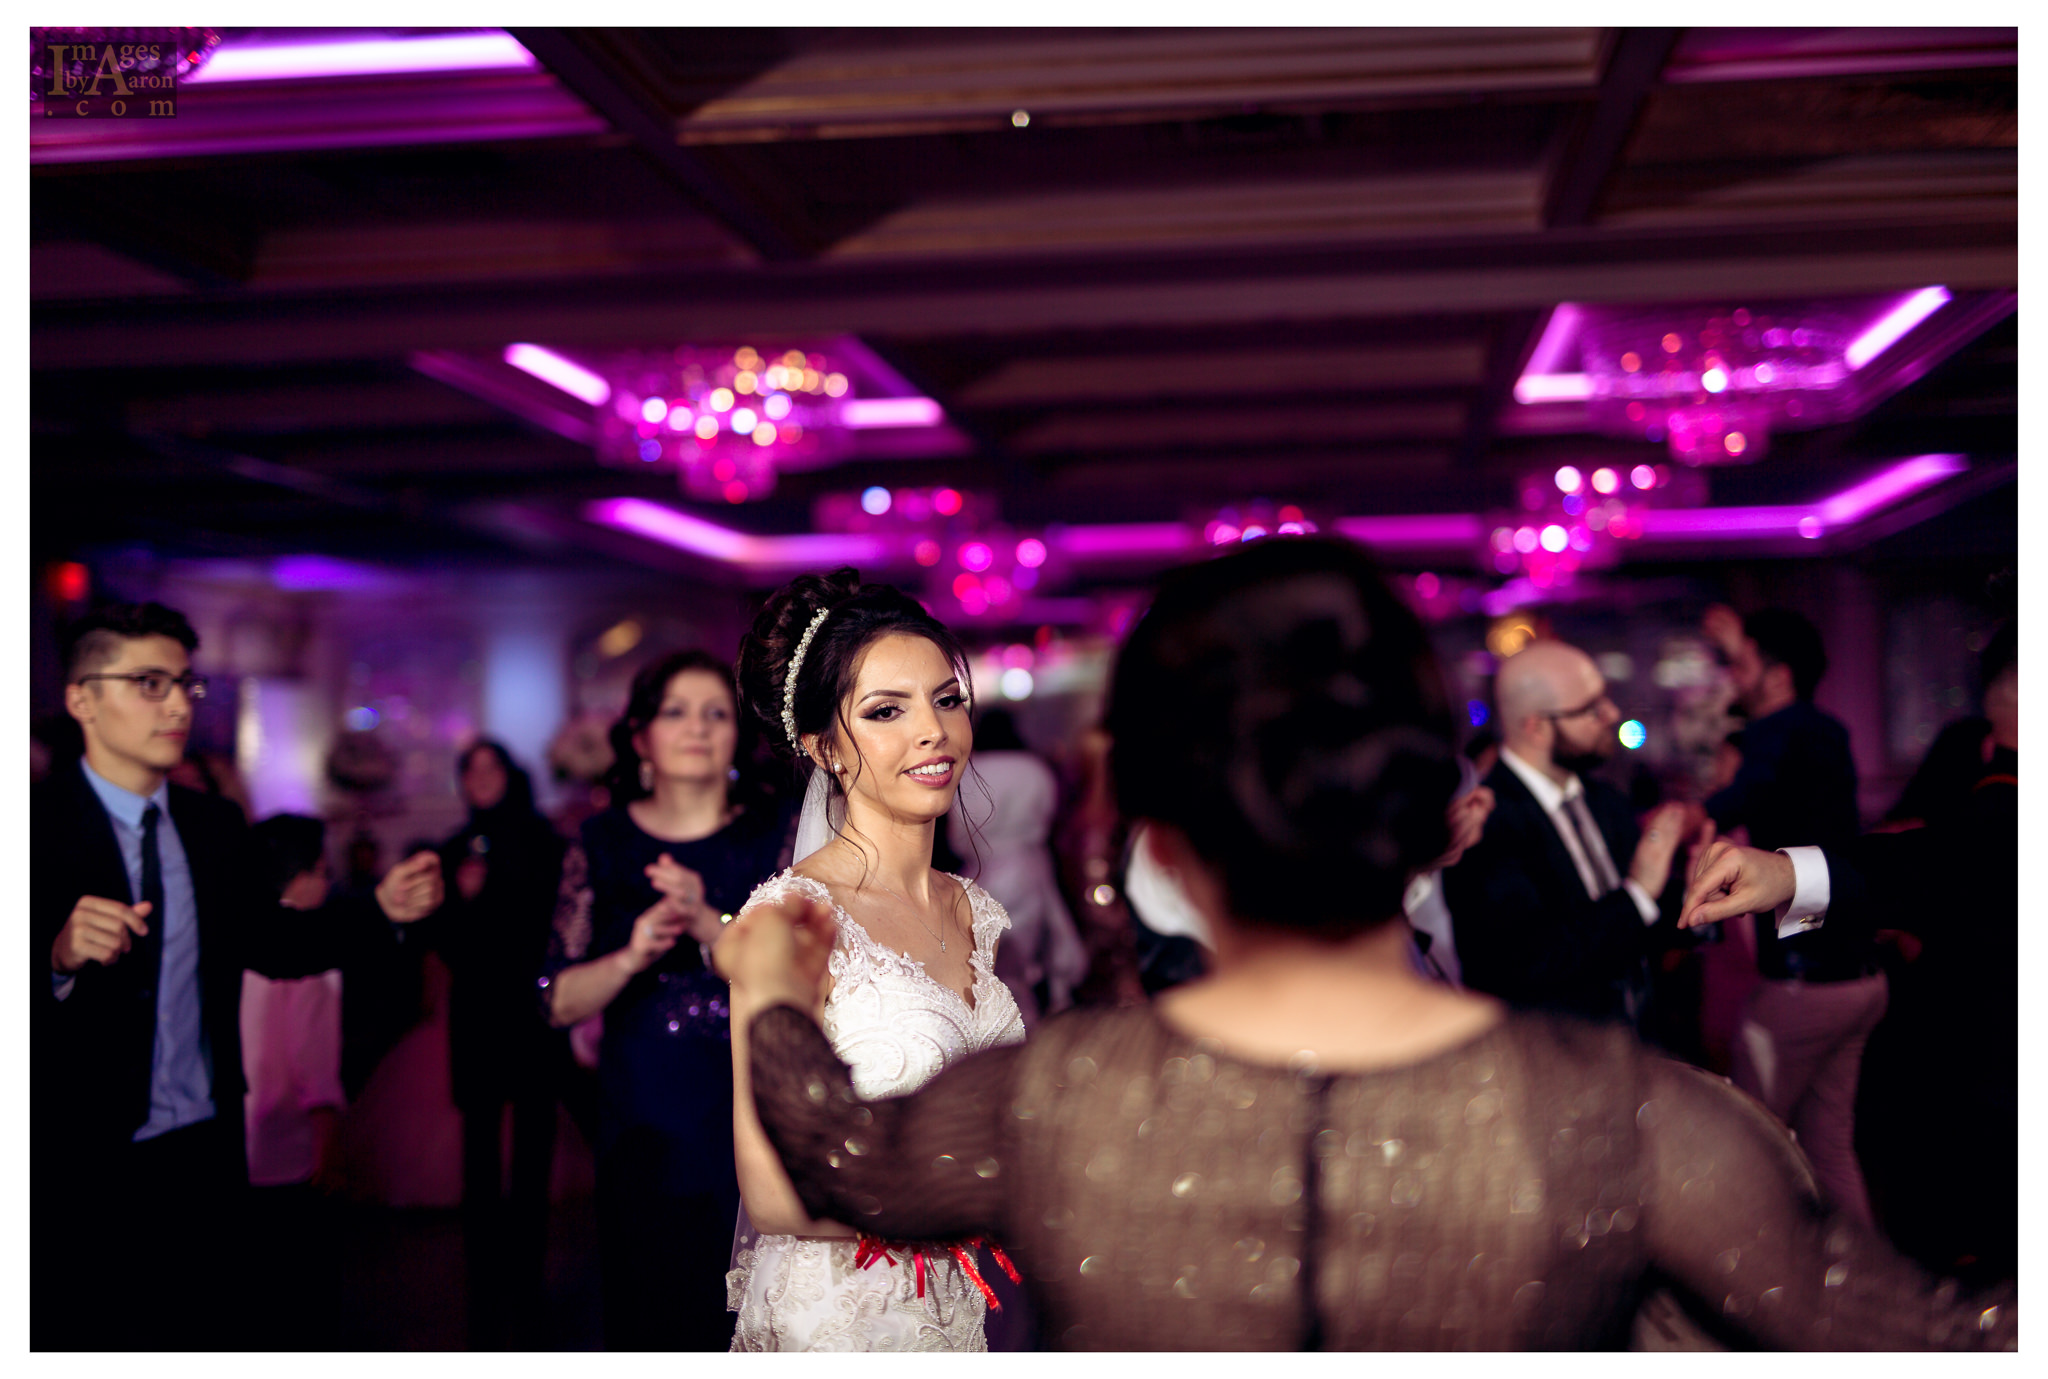 Gokce Turkish Wedding Reception New York Photographer Wedding Photography The Royal Manor-36.jpg